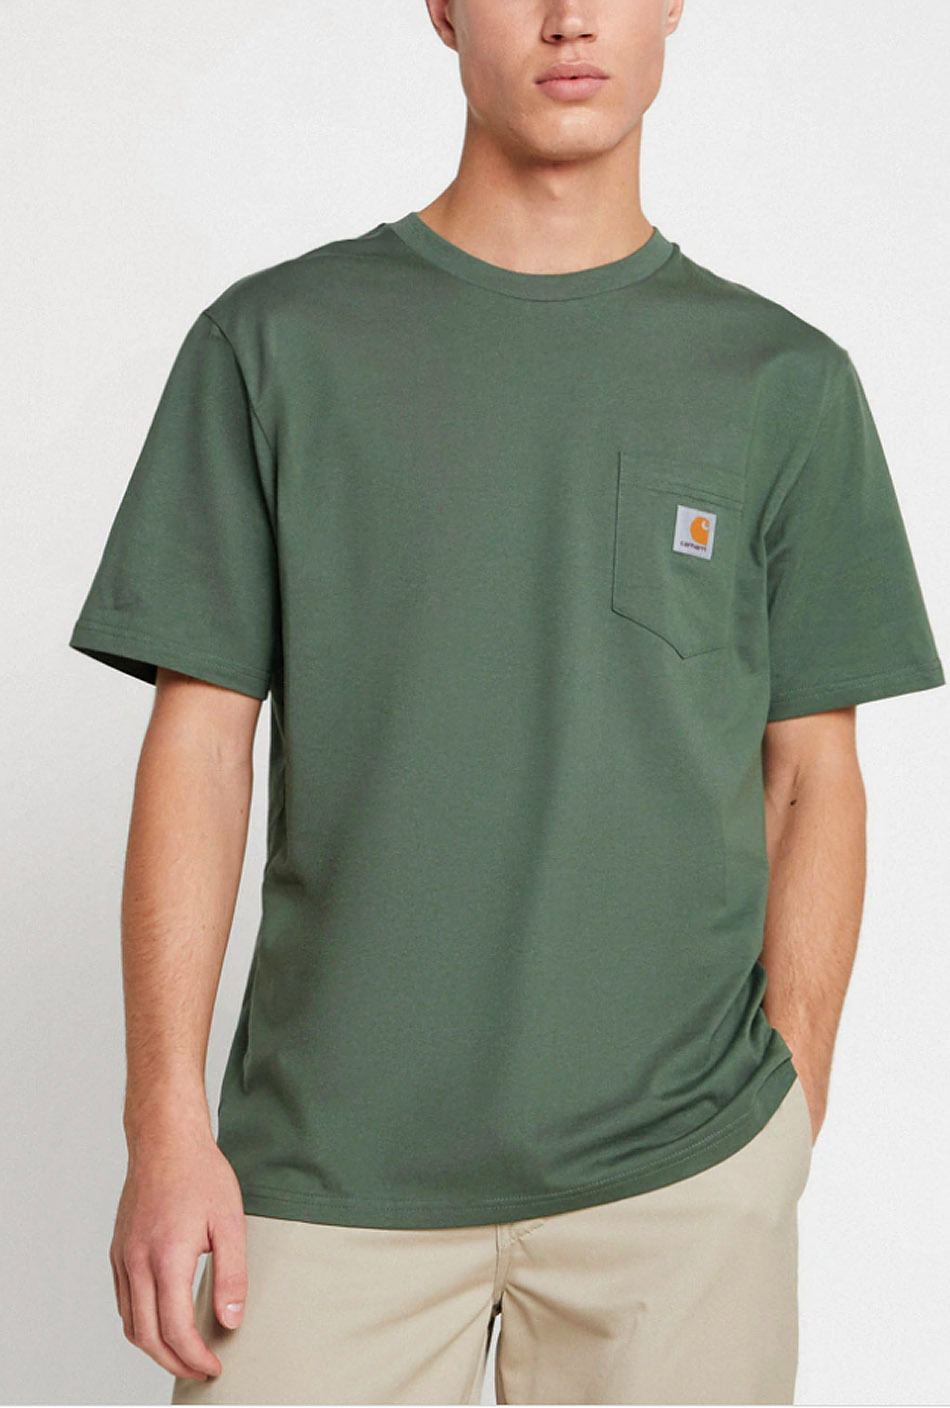 Carhartt Pocket T-Shirt Dollar Green